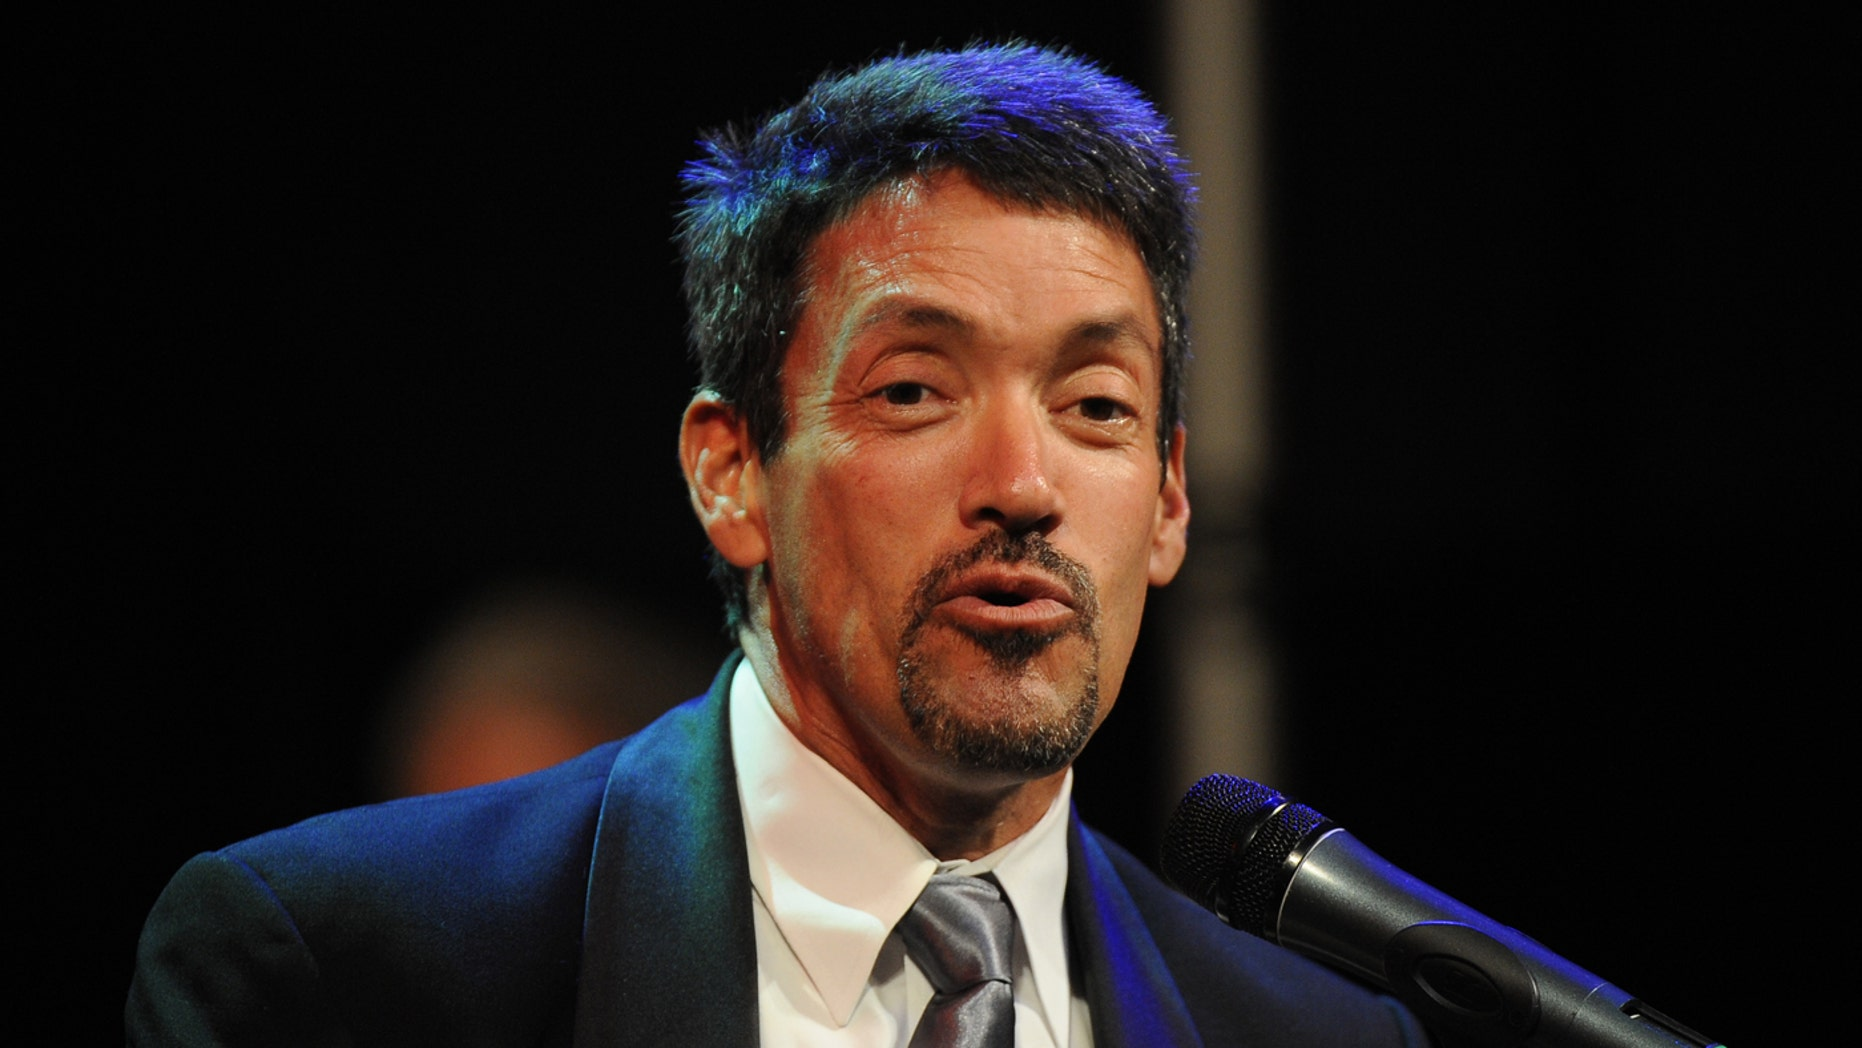 West Hollywood Mayor John J. Duran speaks at a campaign fundraiser event for U.S. President Barack Obama at the House of Blues on the Sunset Strip on September 26, 2011, in West Hollywood, California.